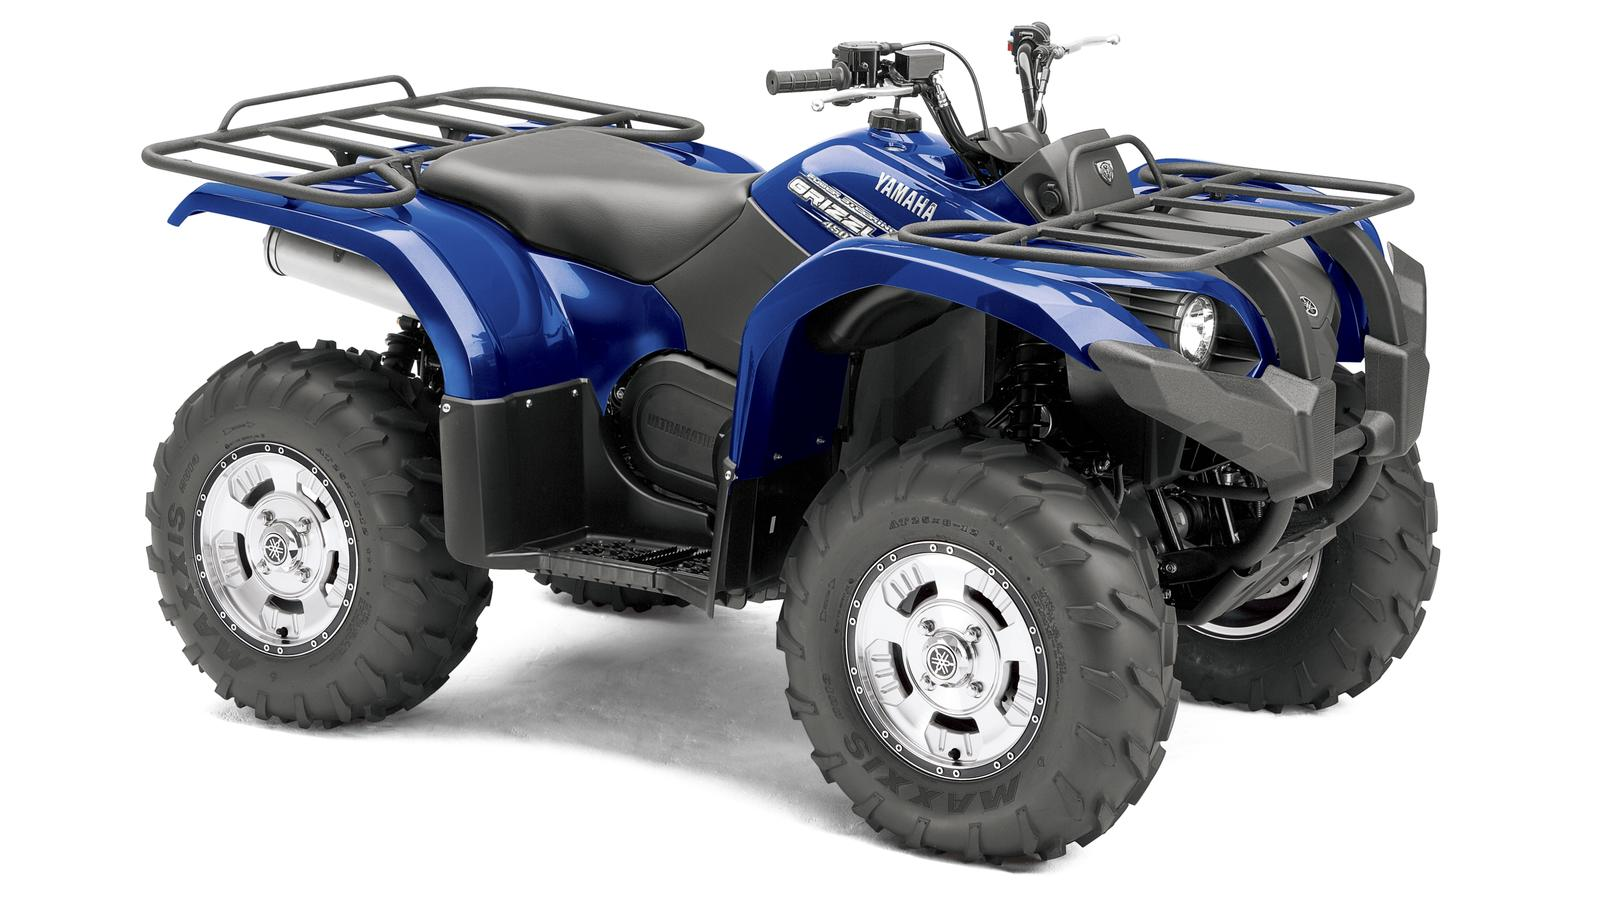 YAMAHA Grizzly 450  2011 photo 4